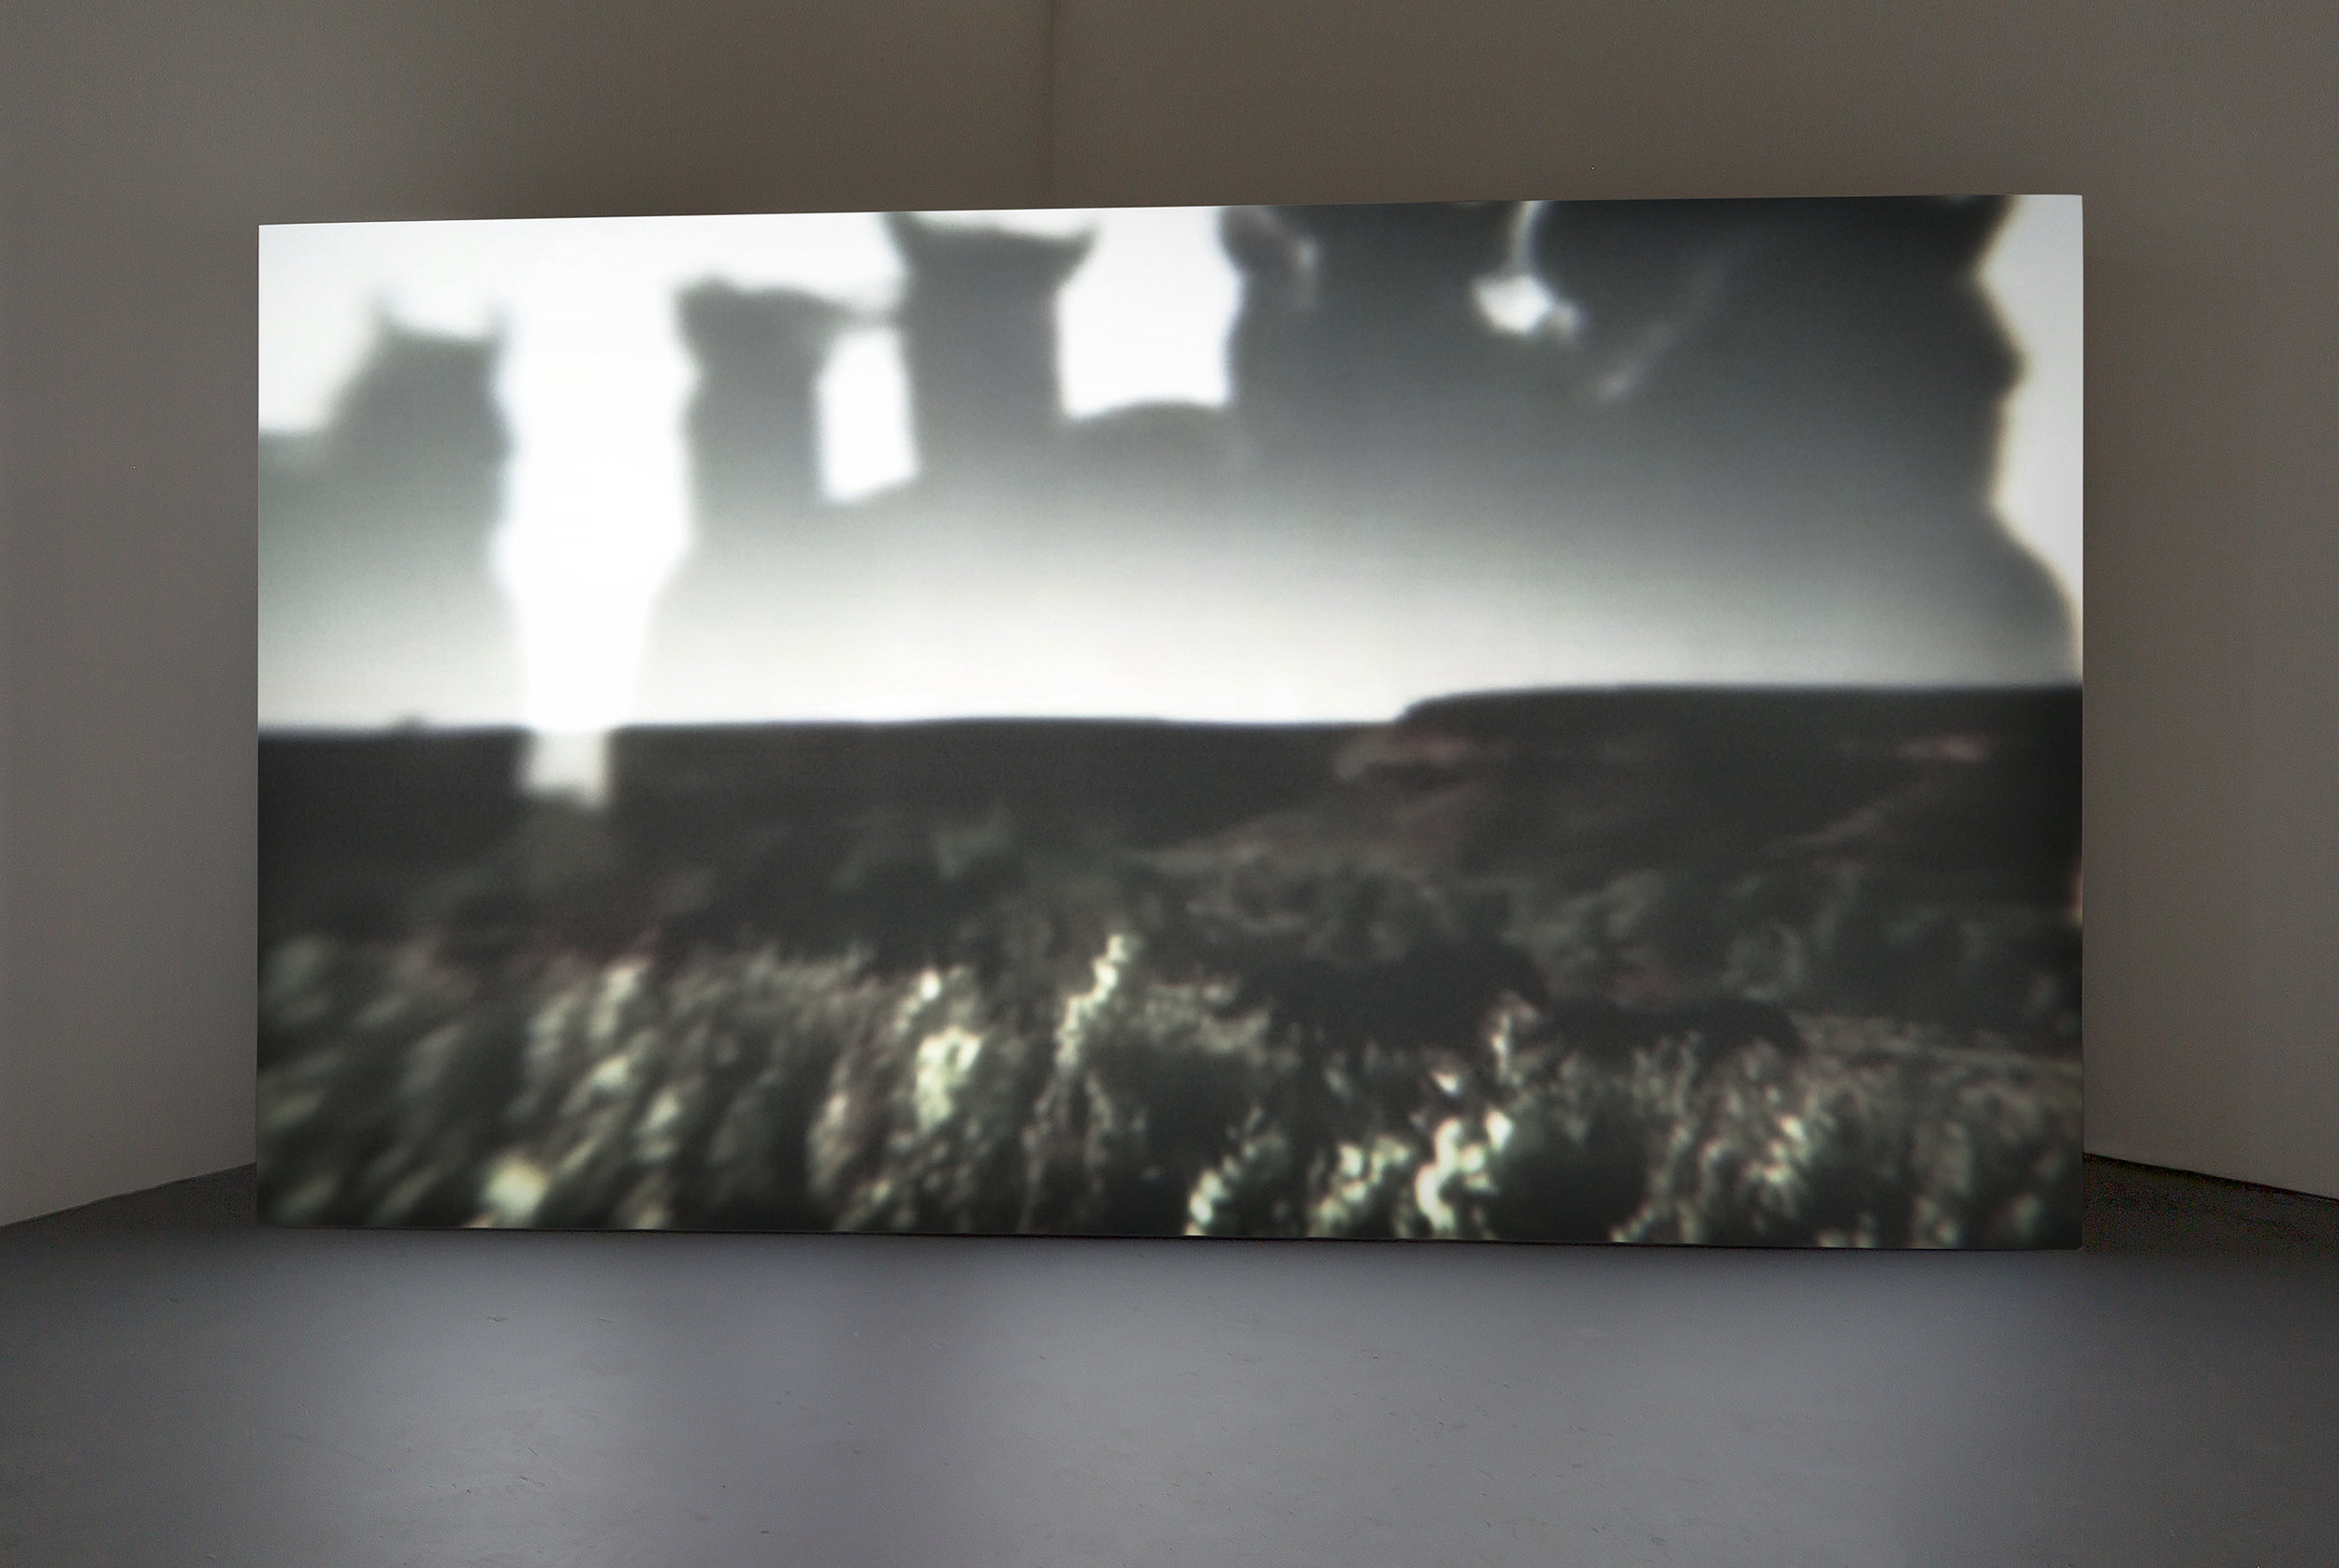 "you can't plan a perfect day sometimes it just happens  by Alison Nguyen, Hd video installation, single channel, color, sound, 10'w x 5' 7 1/2""h x 1' 3 3/4""d custom projection screen, 8 minute loop, 2017 - 2019"